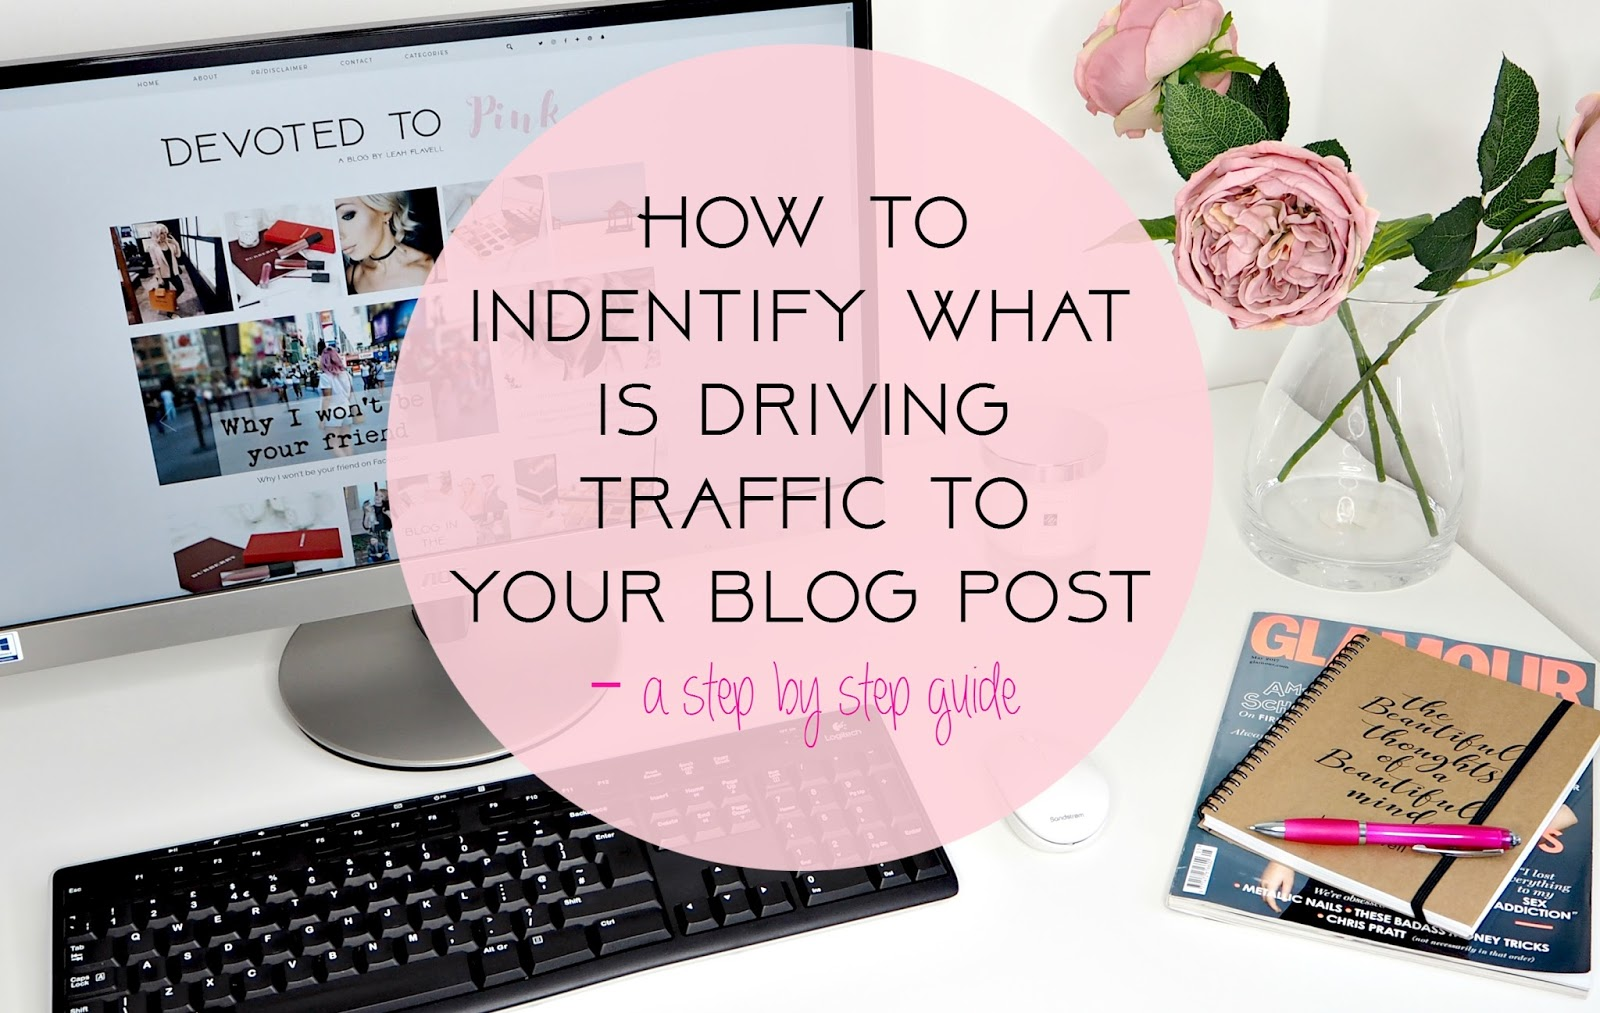 How To Identify What Is Driving Traffic To Your Blog Post - A Step By Step Google Analytics Guide